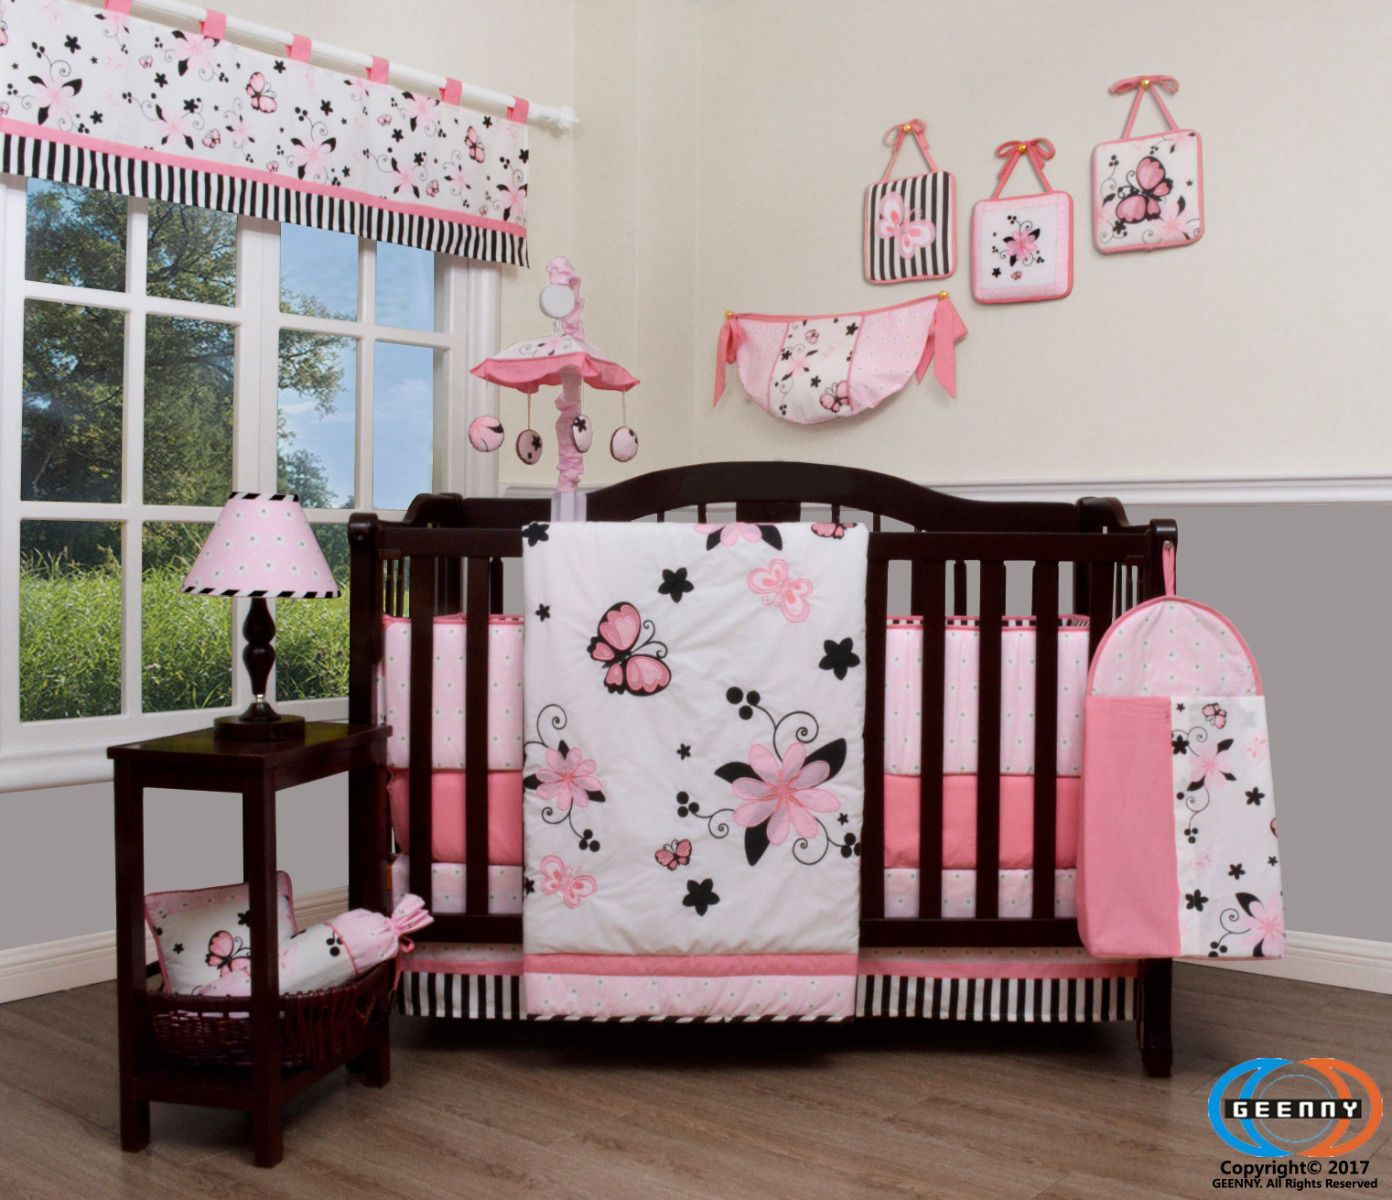 15pcs New Pink Butterfly Baby Crib Bedding Set Including Mobile